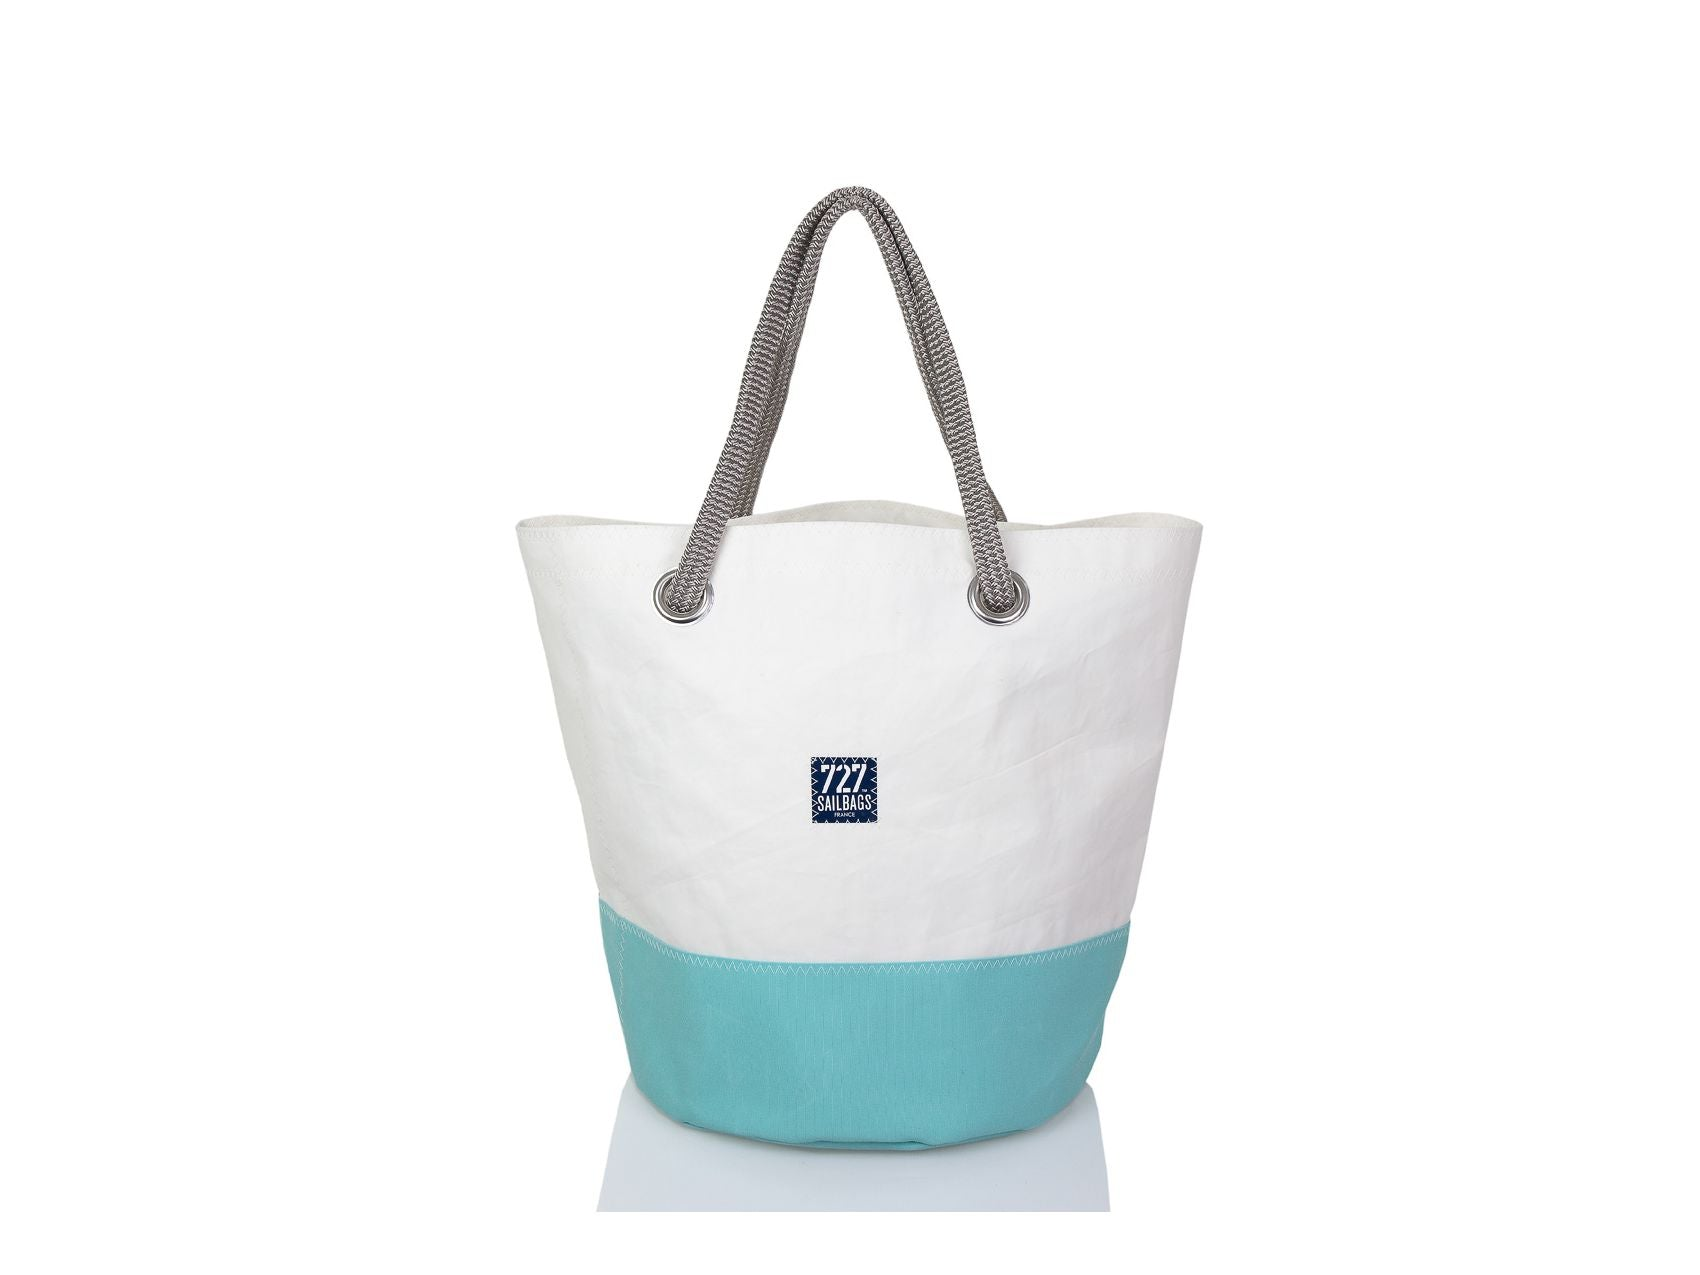 Grey Turquoise Recycled Sails Big Tote Bag, 727 Sailbags